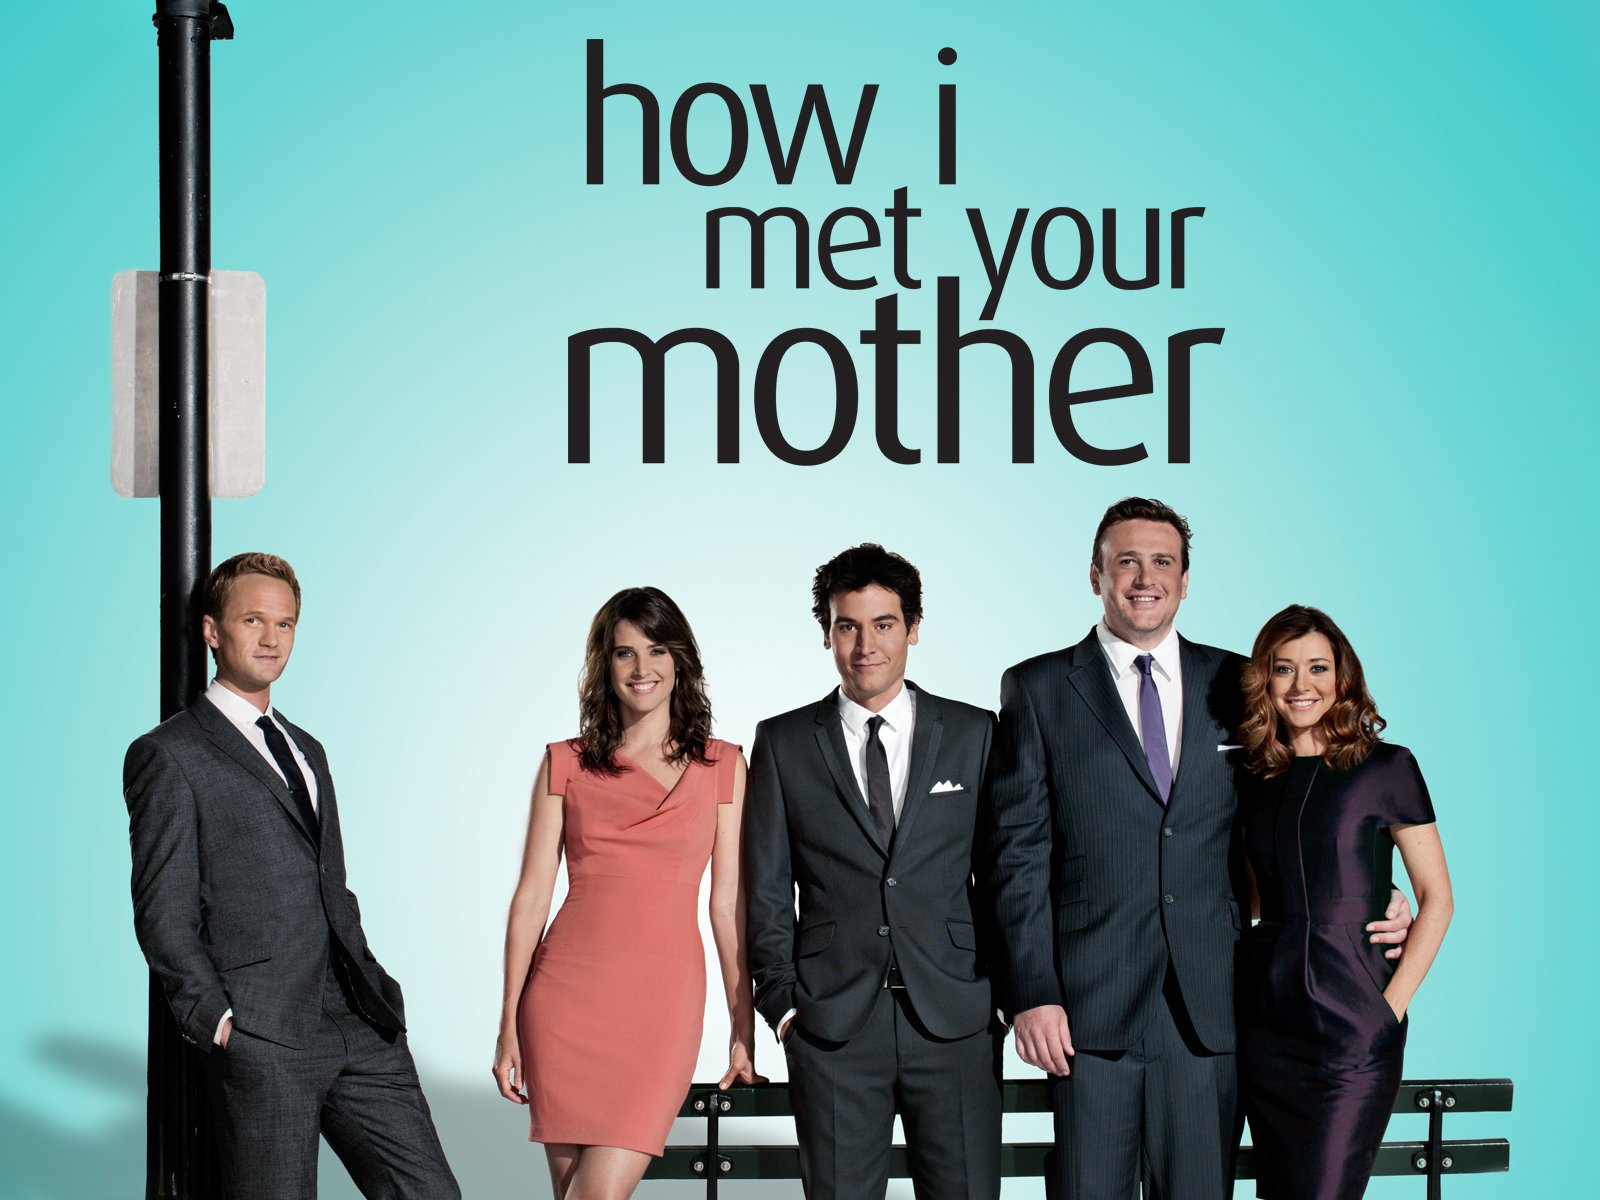 The cast of How I Met Your Mother stand smiling in formal wear